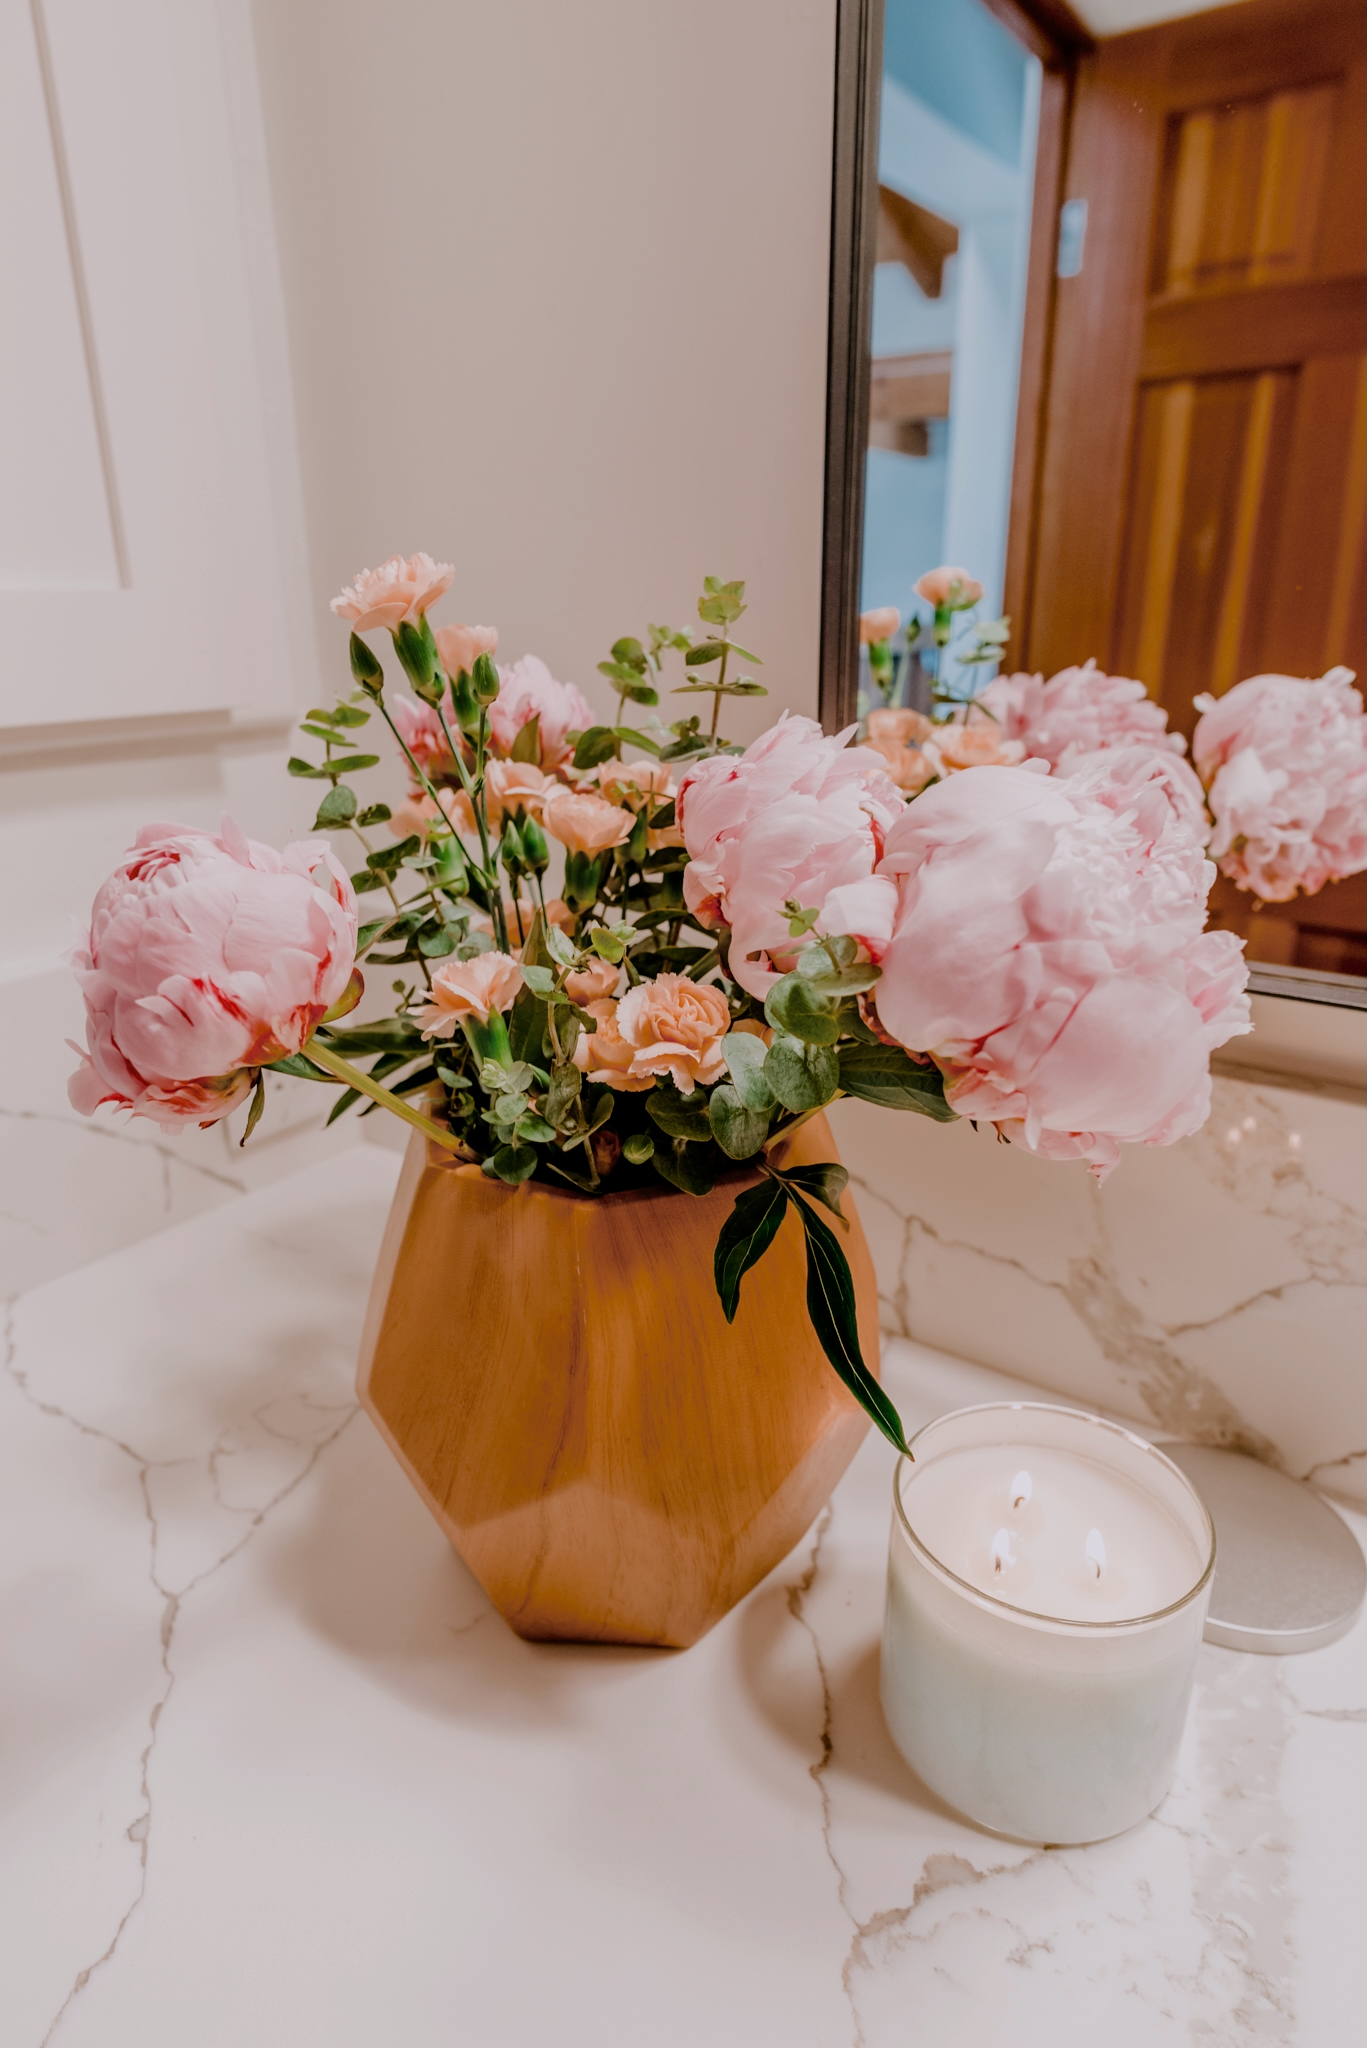 pink flowers on a vase and candle for a collage of Decor Essentials for Hosting Guests